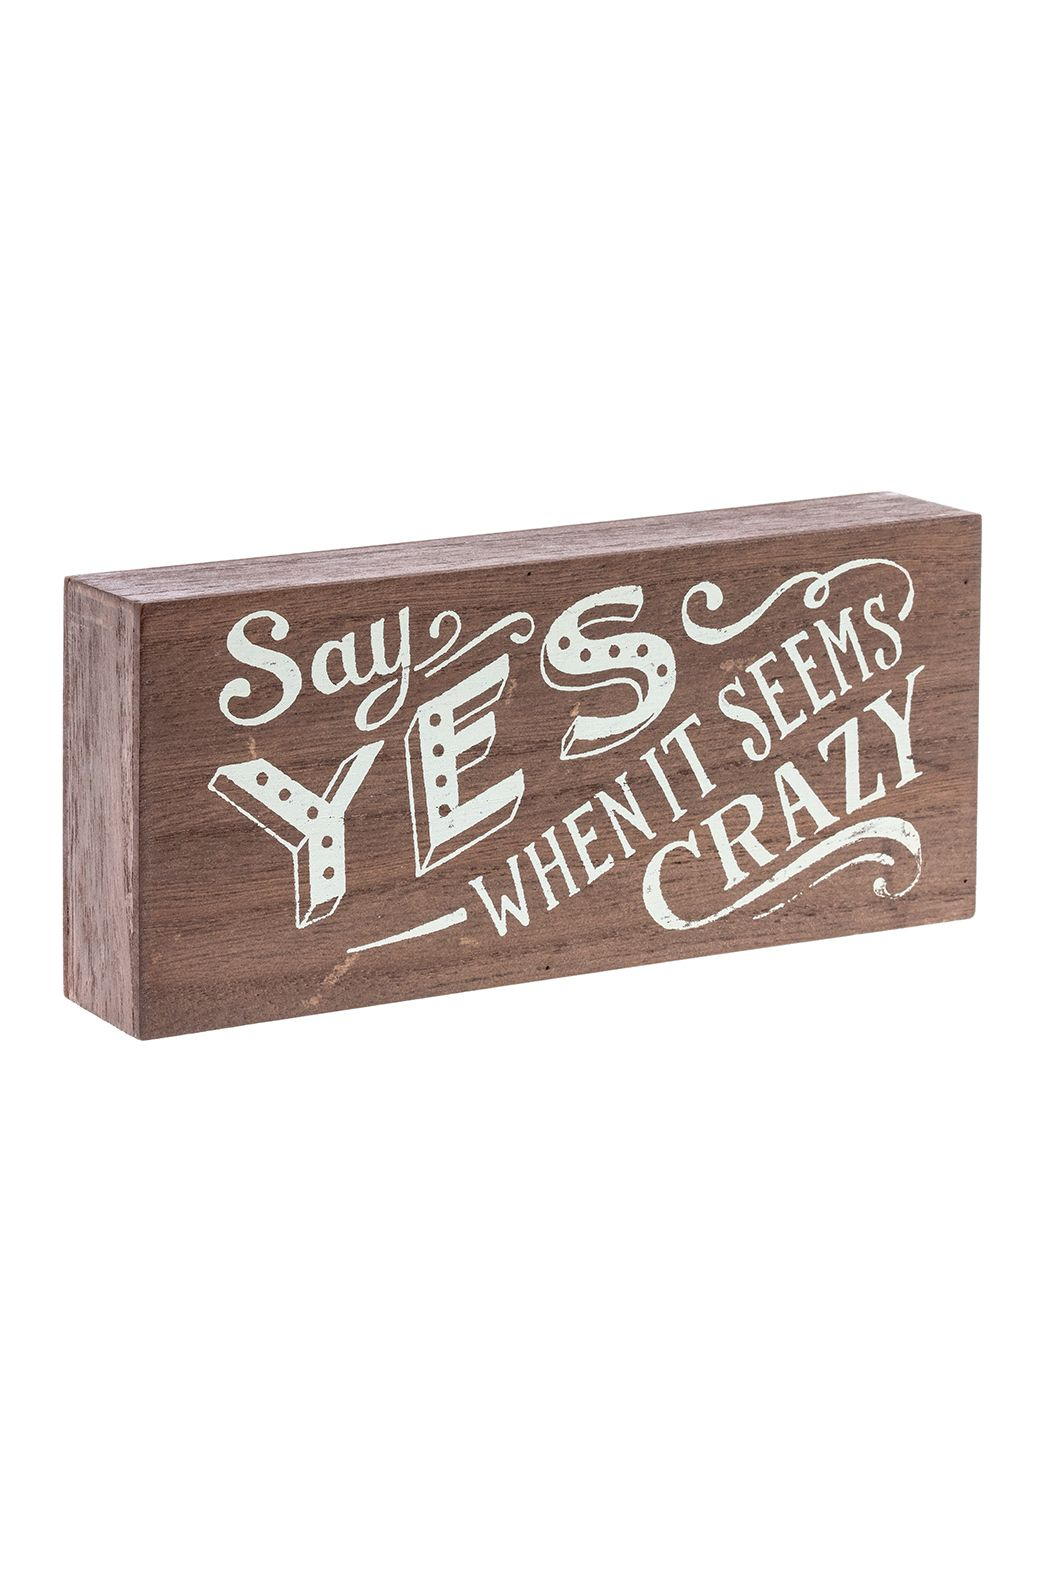 Say Yes when it seems crazy wood block sign. Set on a shelf or hang on the wall.   Say Yes Block by Midwest. Home & Gifts - Home Decor - Wall Art Florida